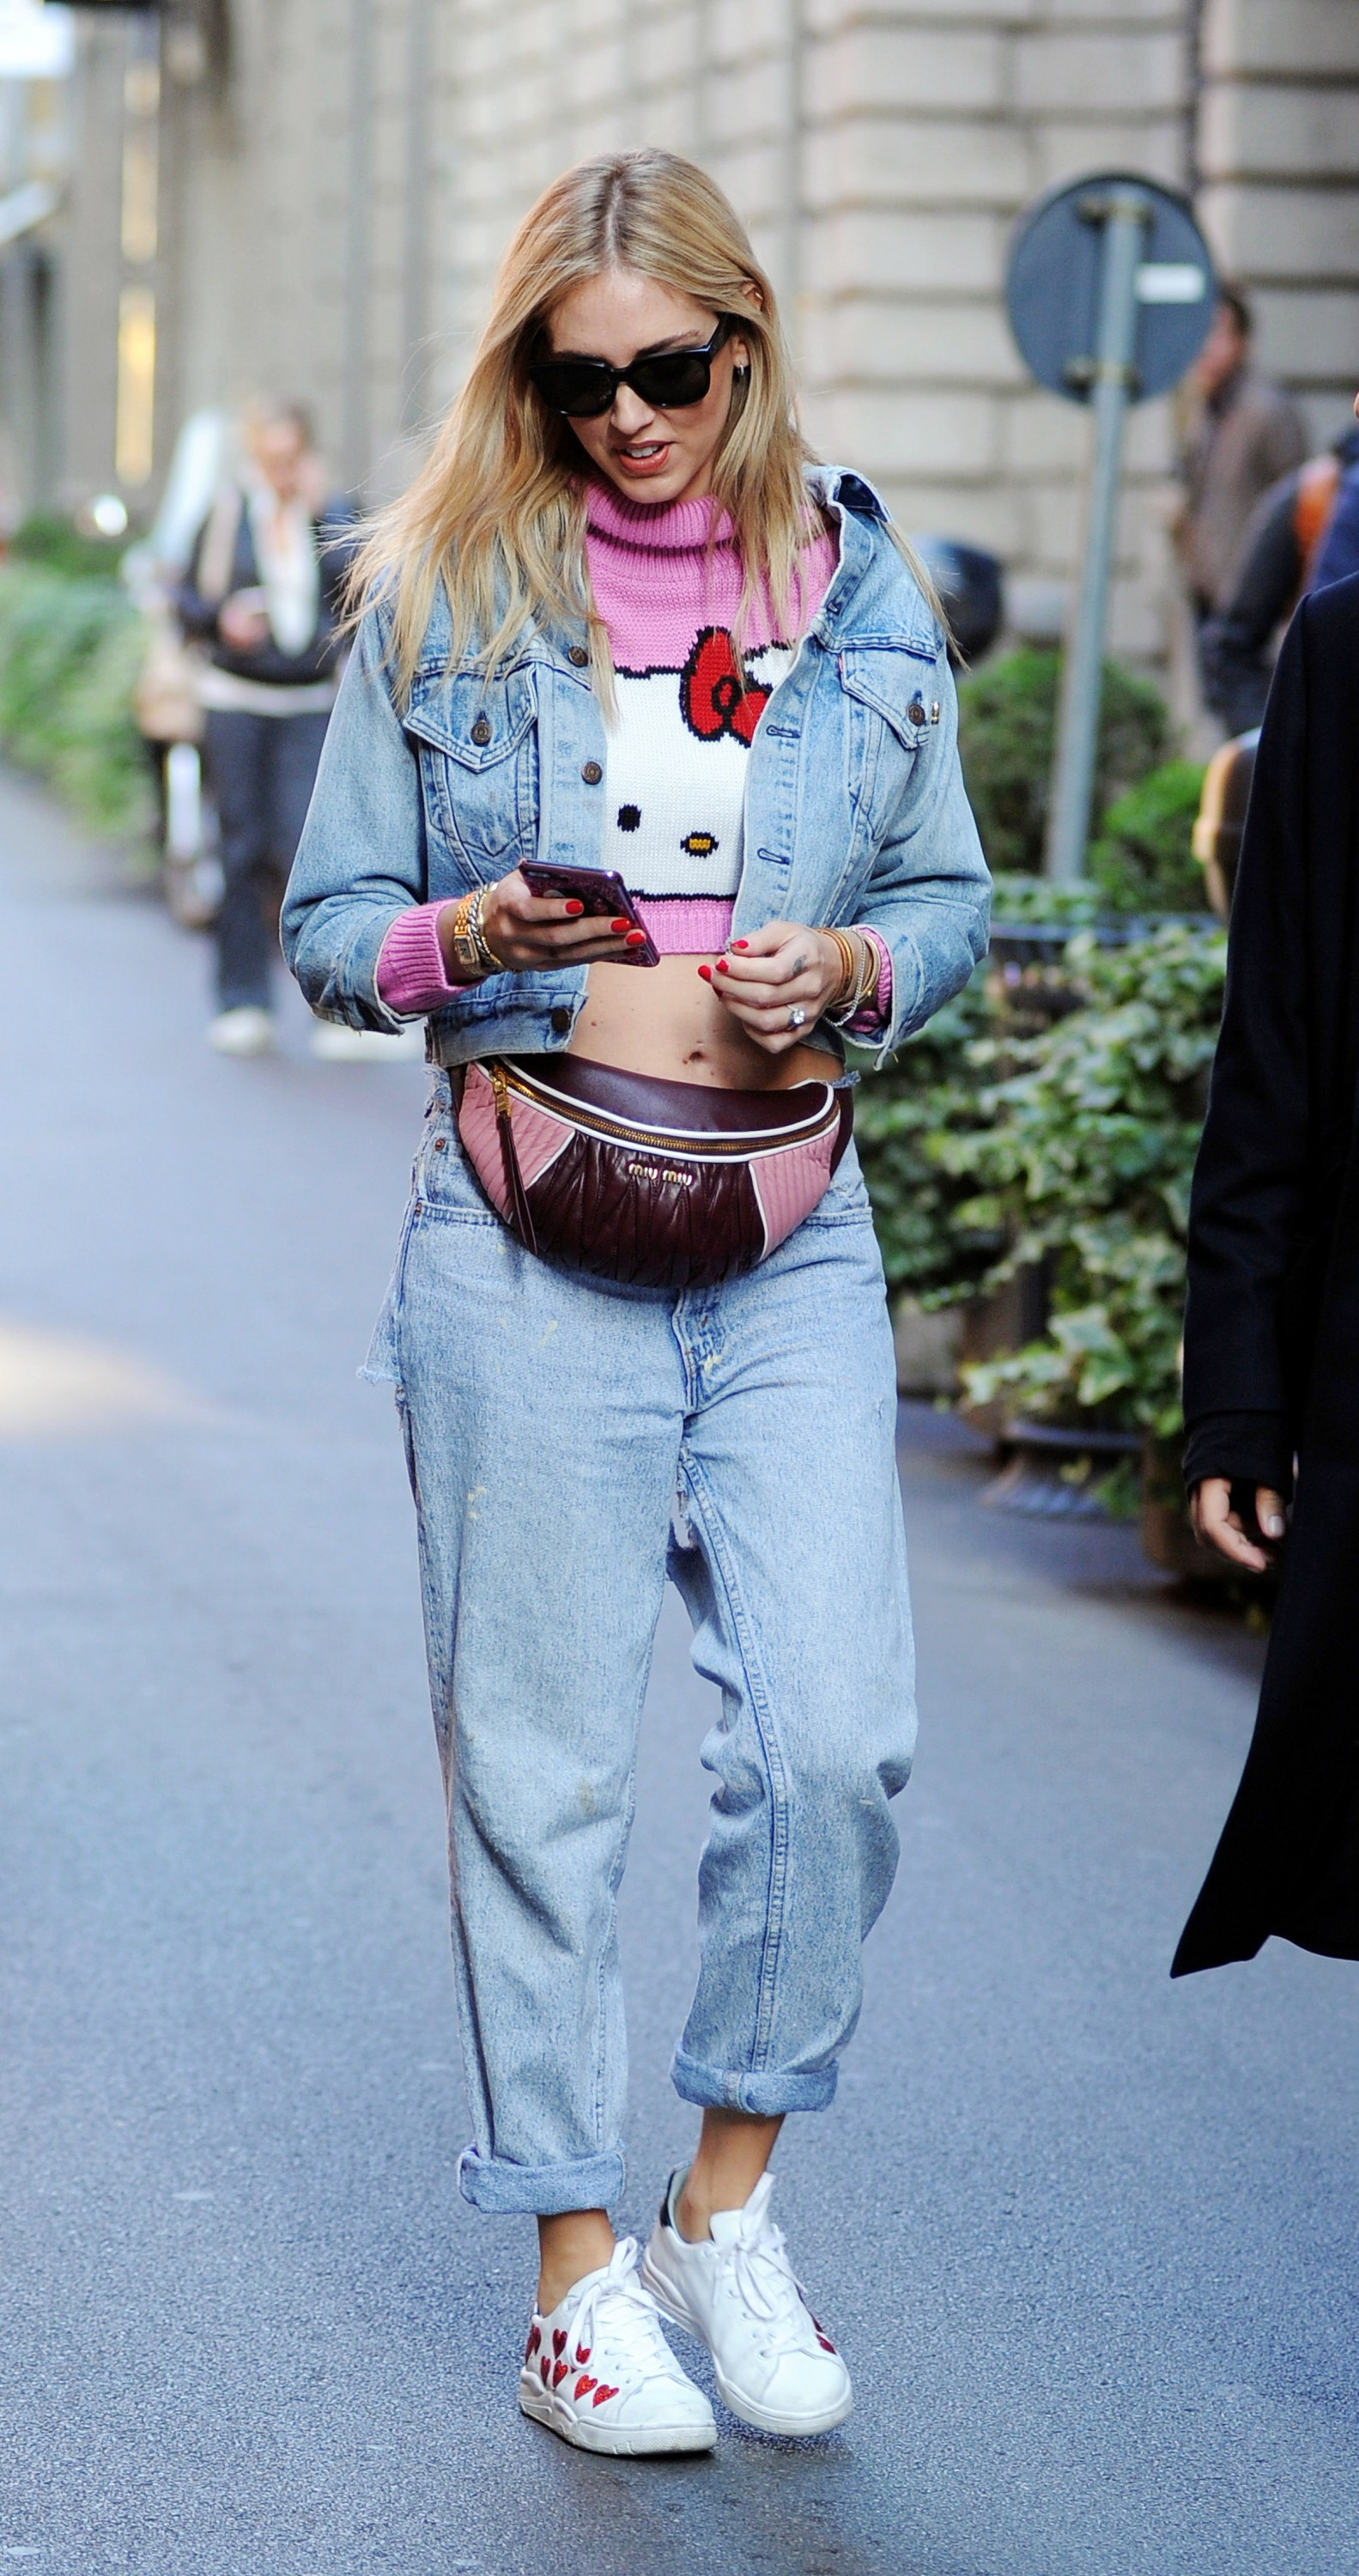 Pregnant Chiara Ferragni in Hello Kitty T shirt and a fanny pack is spotted out and about in Milan, Italy. Pictured: Chiara Ferragni Ref: SPL1614950 031117 Picture by: Splash News Splash News and Pictures Los Angeles:310-821-2666 New York: 212-619-2666 London: 870-934-2666 photodesk@splashnews.com